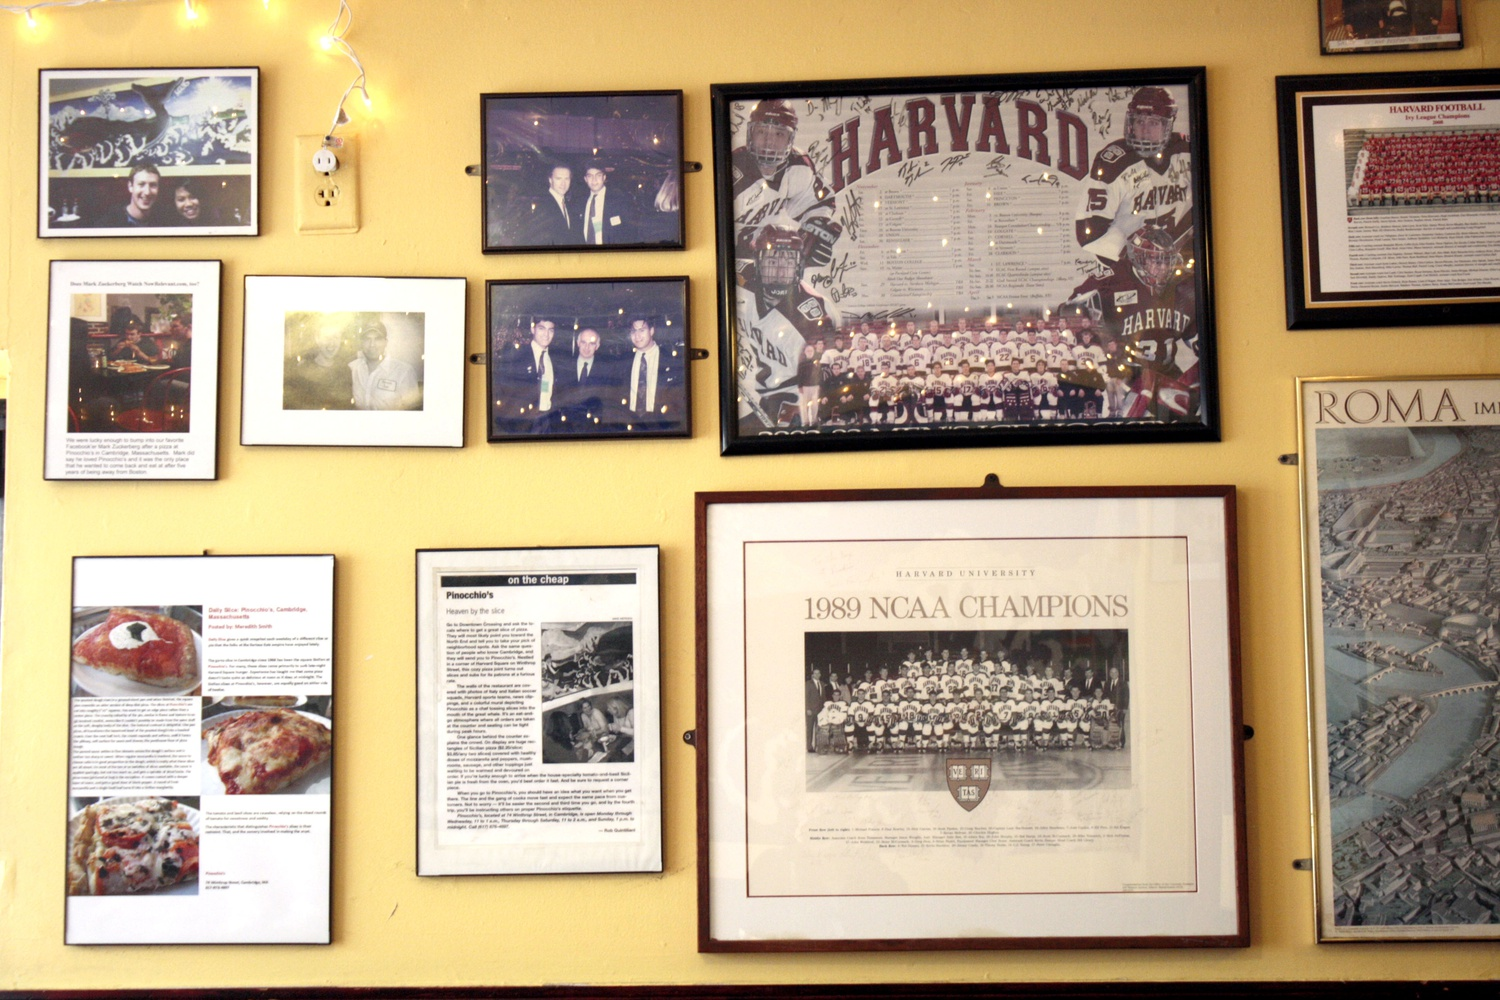 Photos adorn the walls of Pinocchio's Pizza & Subs, relating its rich history in Harvard Square.